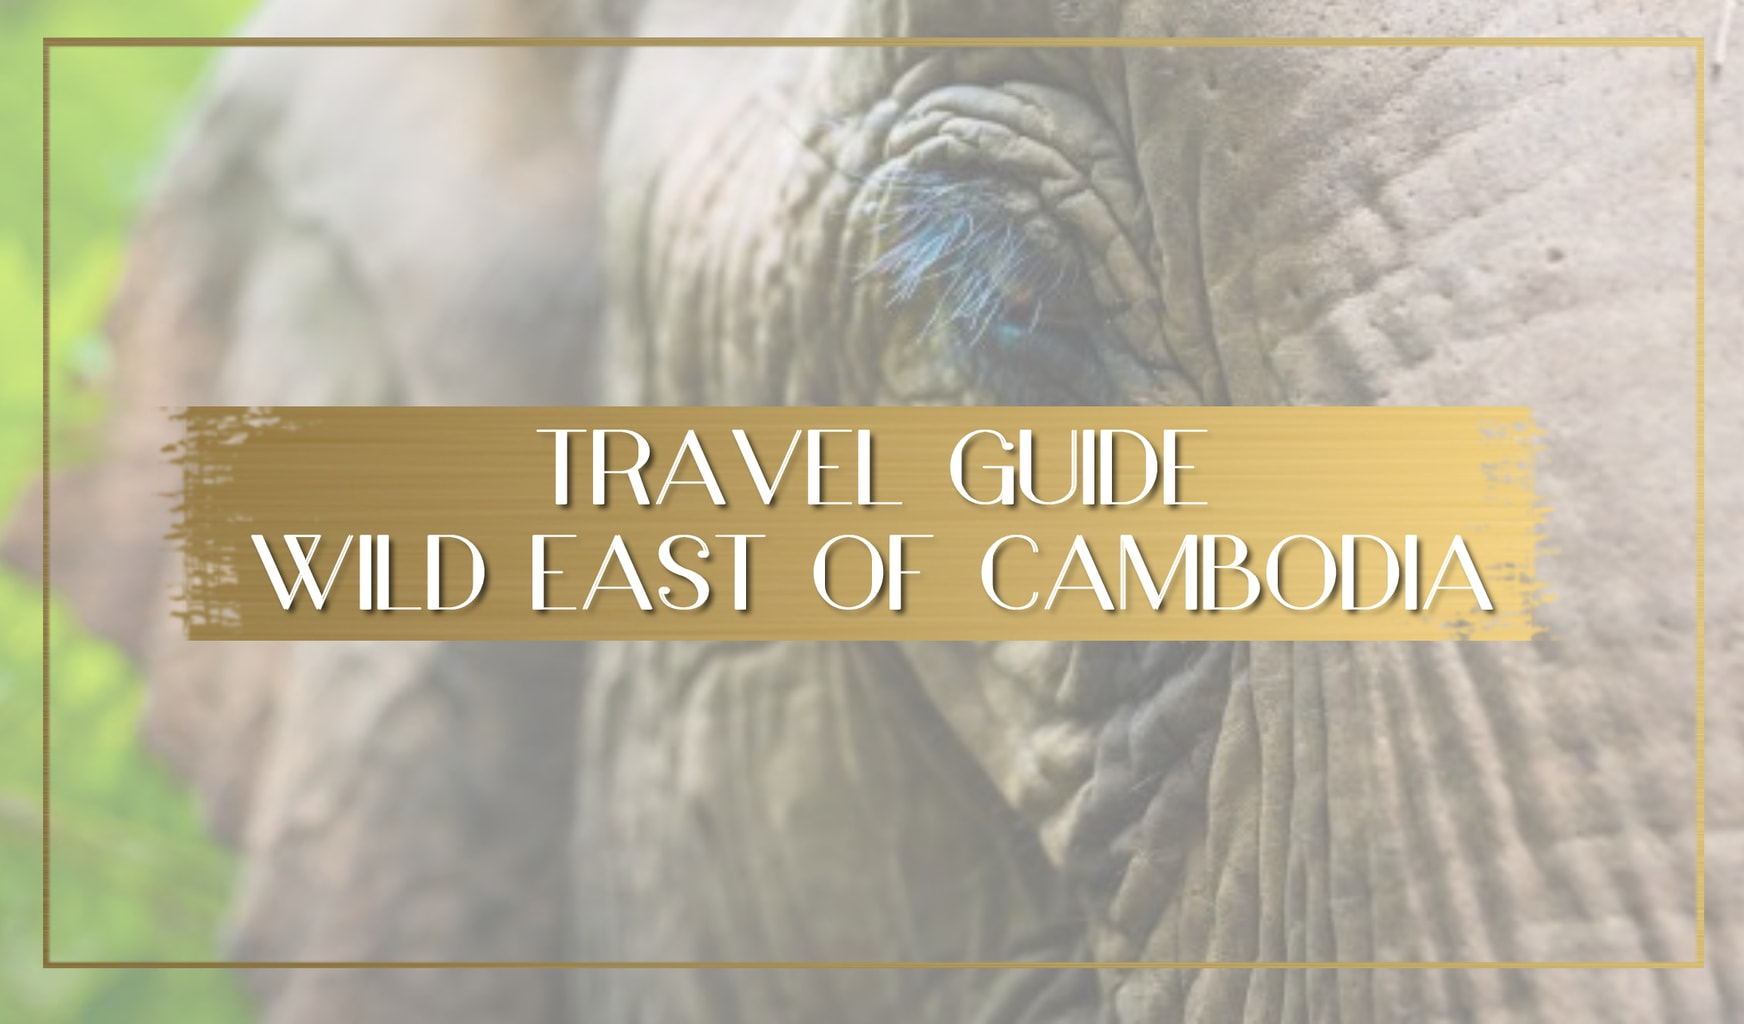 Guide to Cambodia's Wild East main